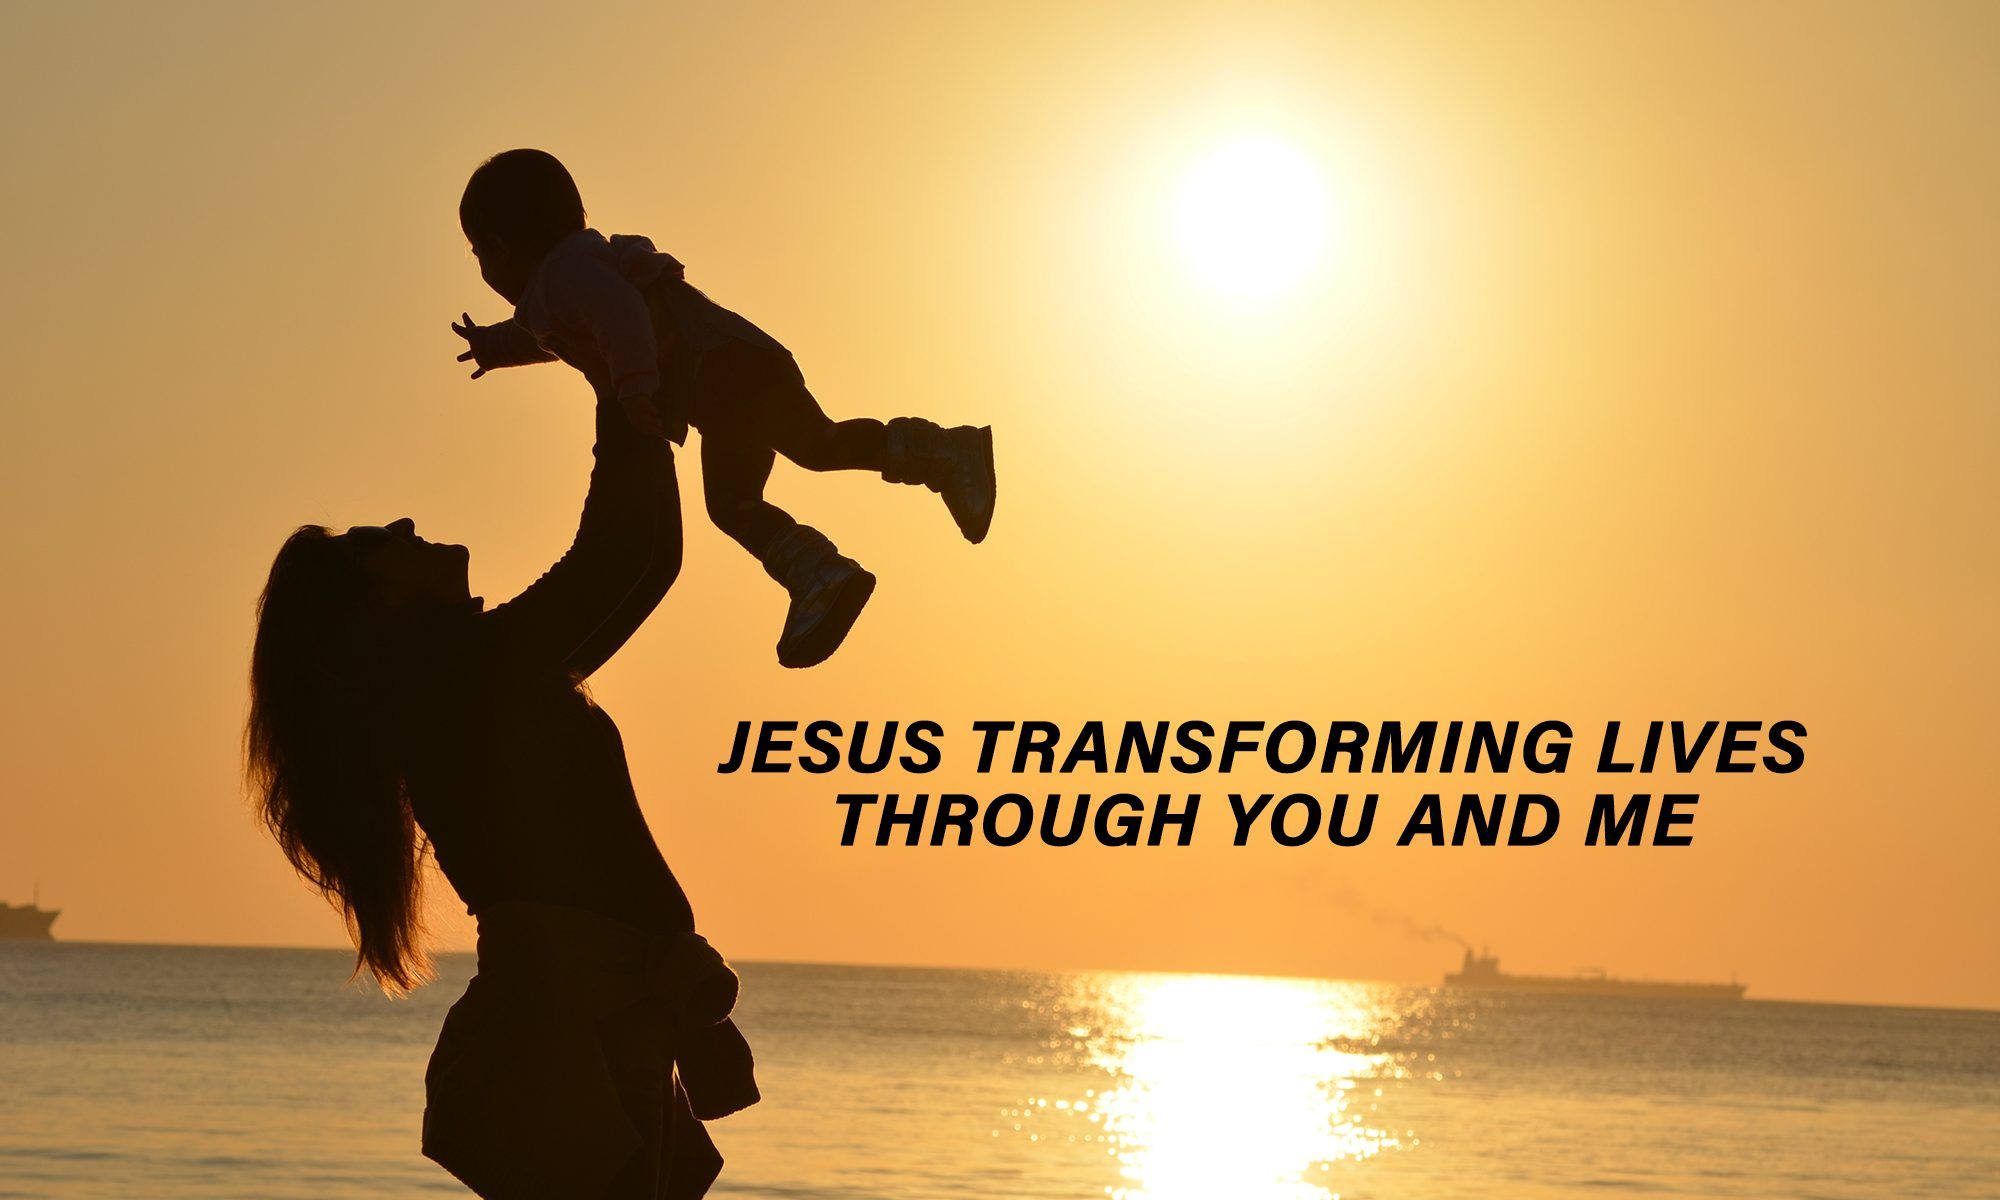 Vision: Jesus transforming lives through you and me.